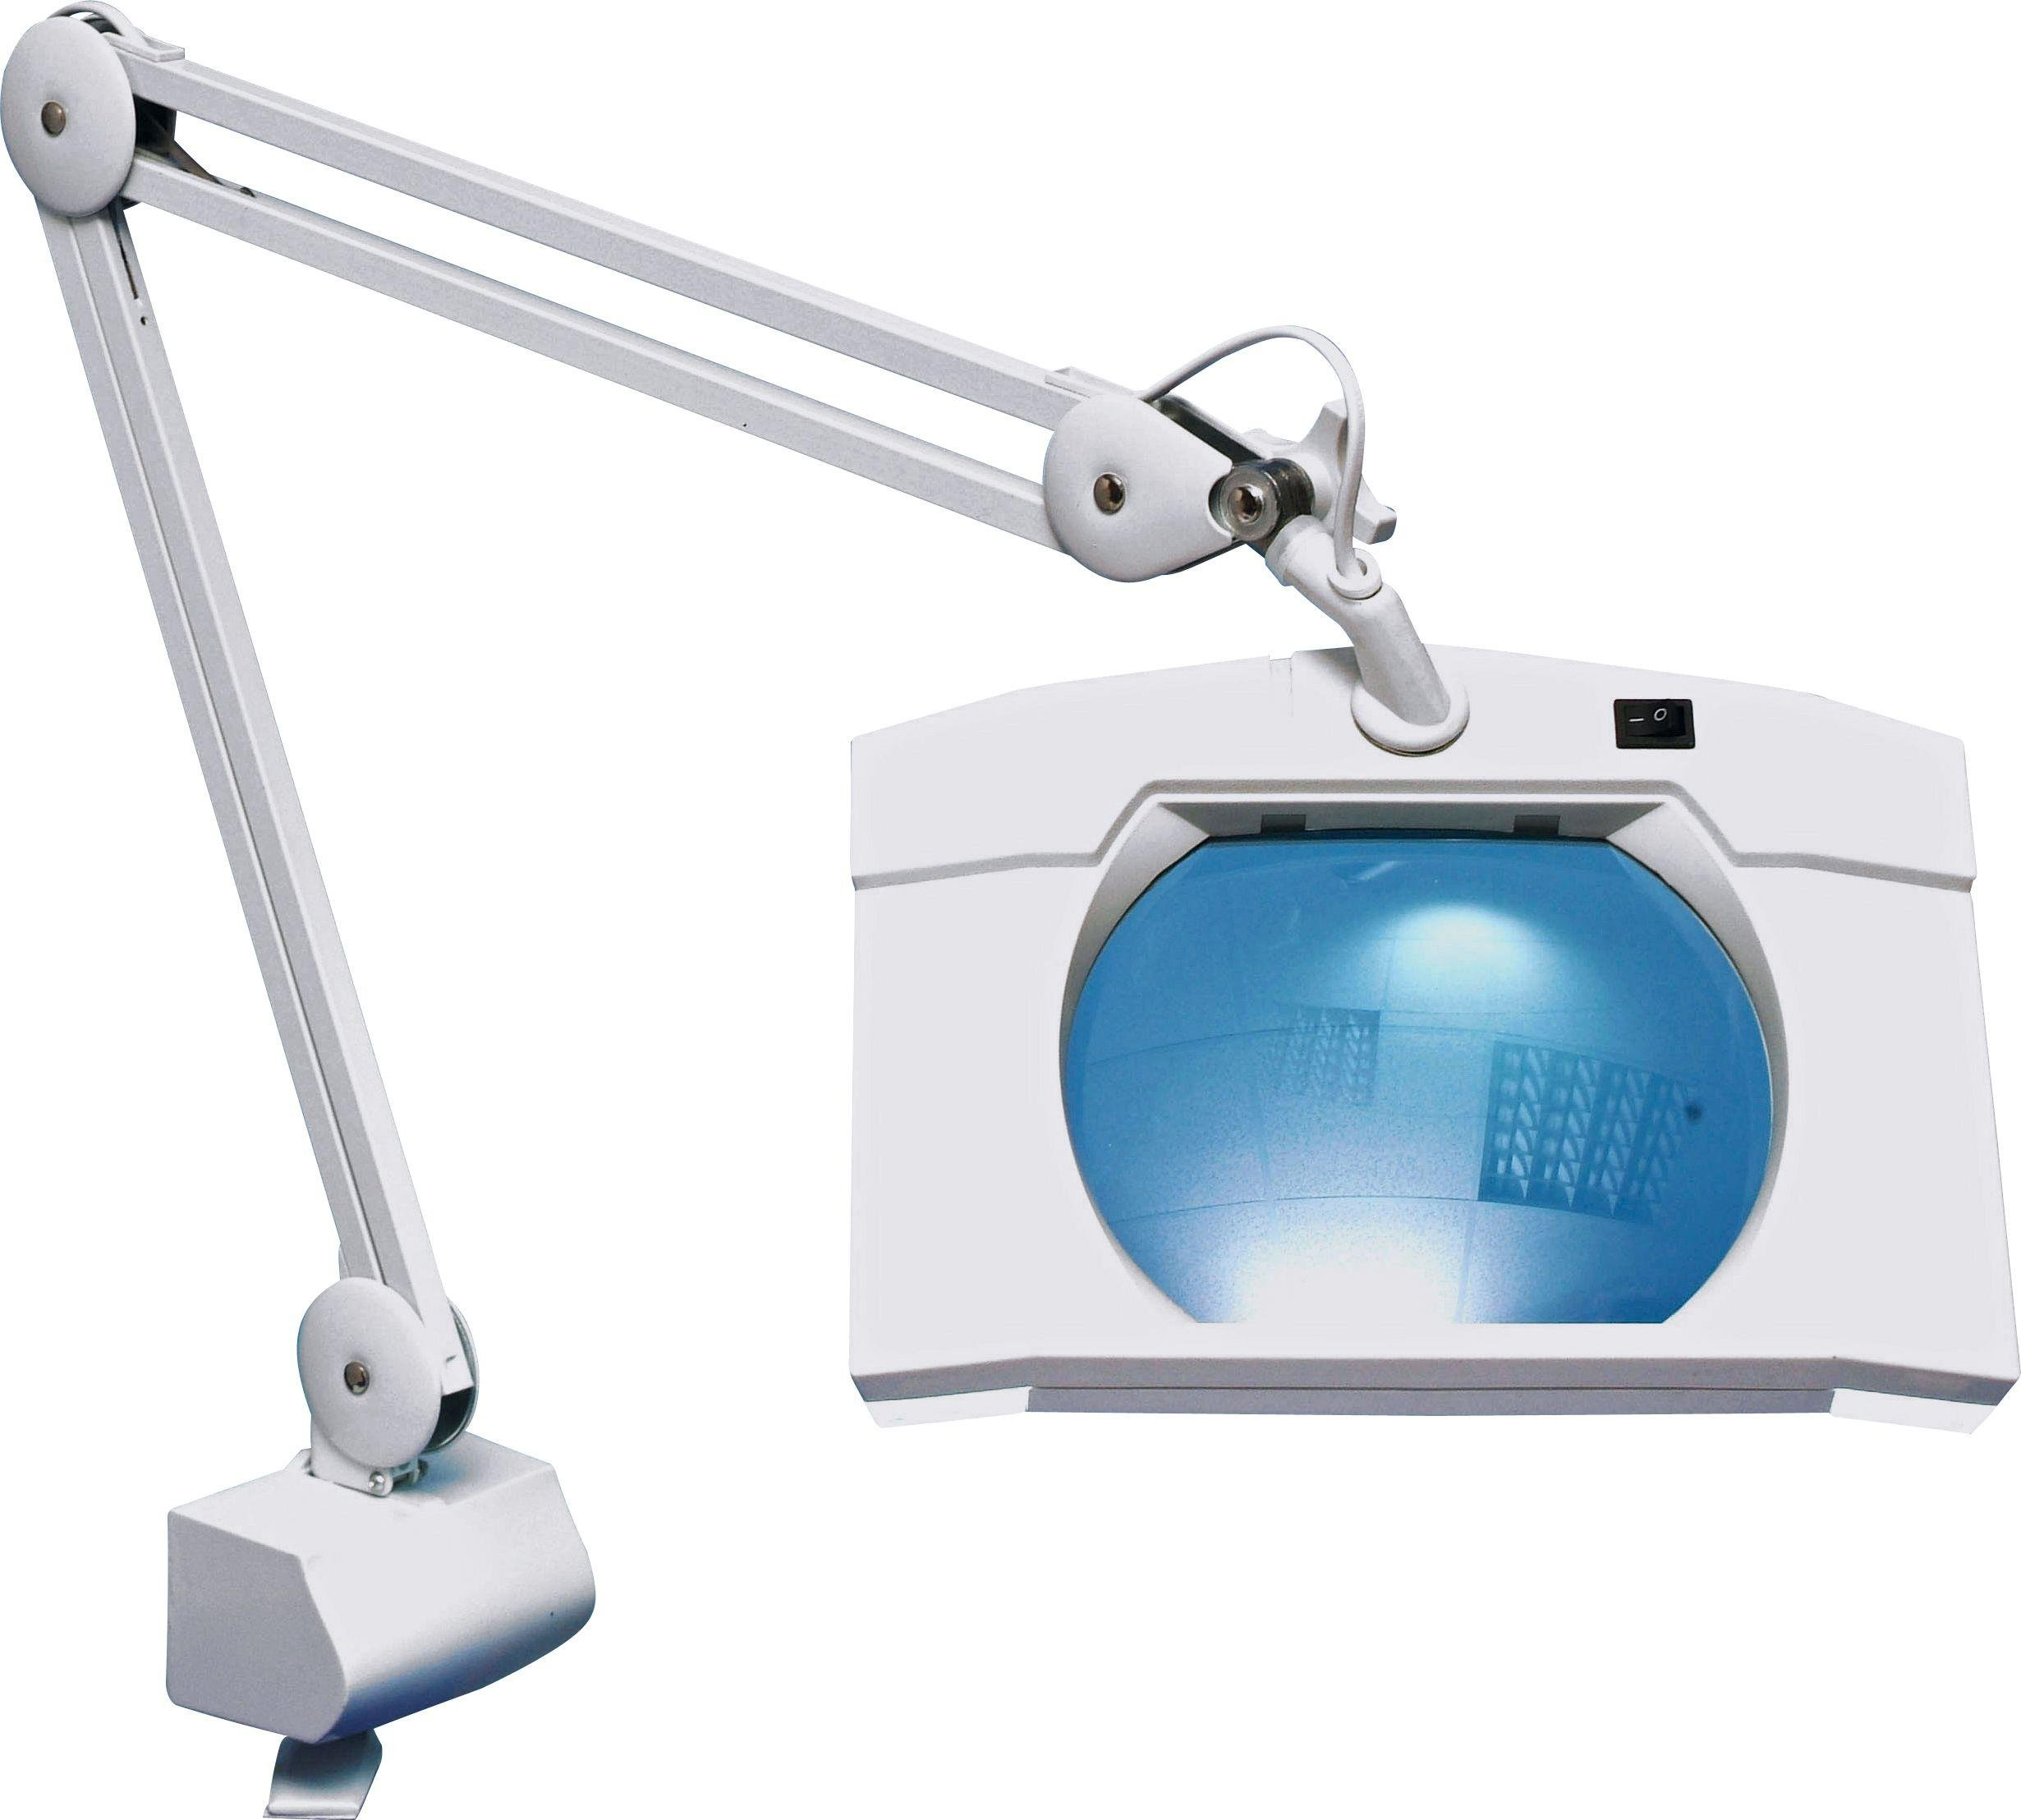 Image of Square Extendable Magnifier Lamp with Table Clamp